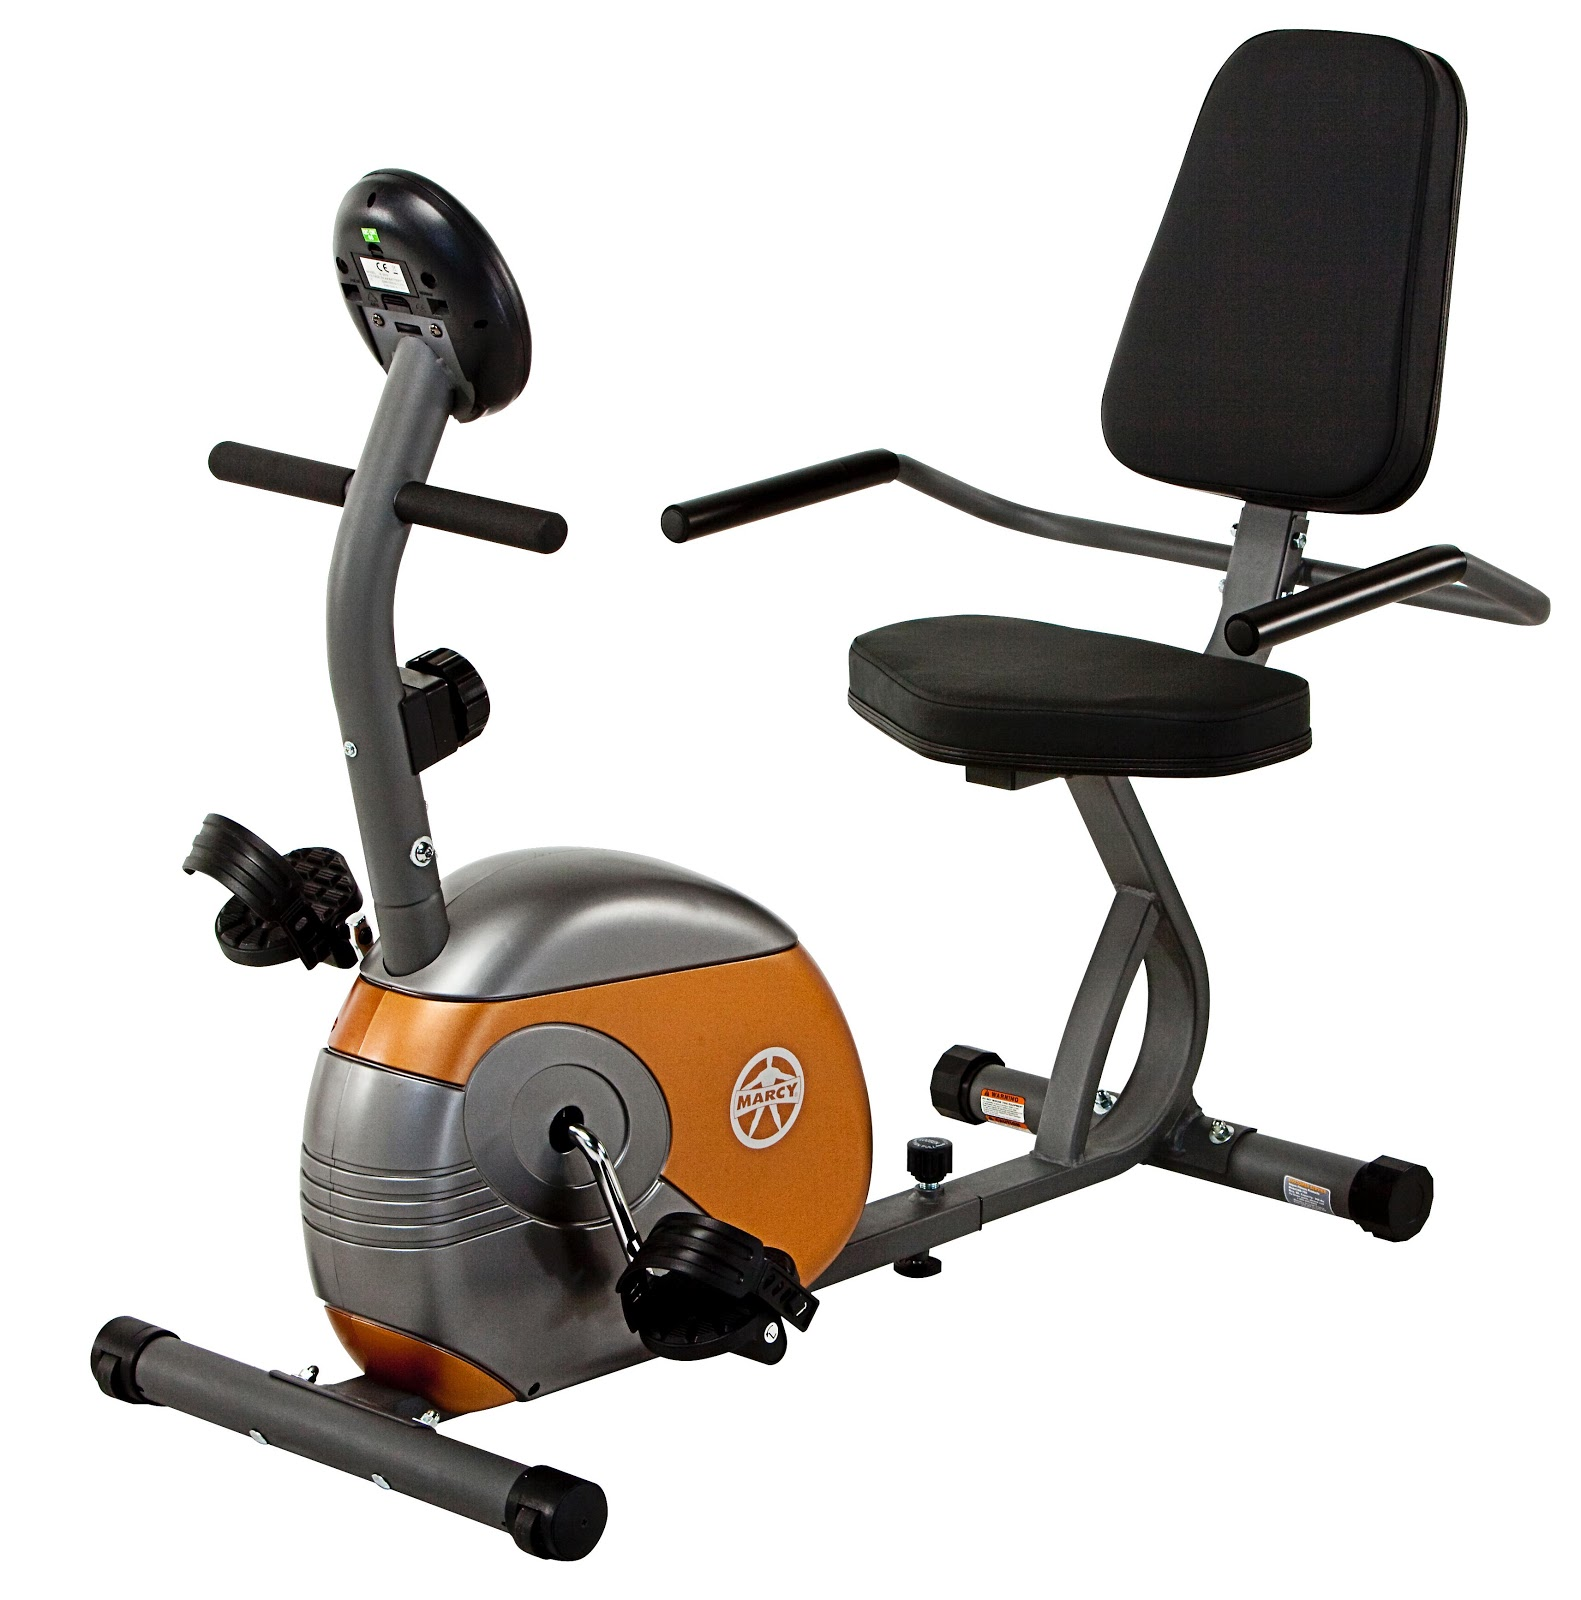 Marcy Recumbent Me 709 Walmart Exercise Bike Review